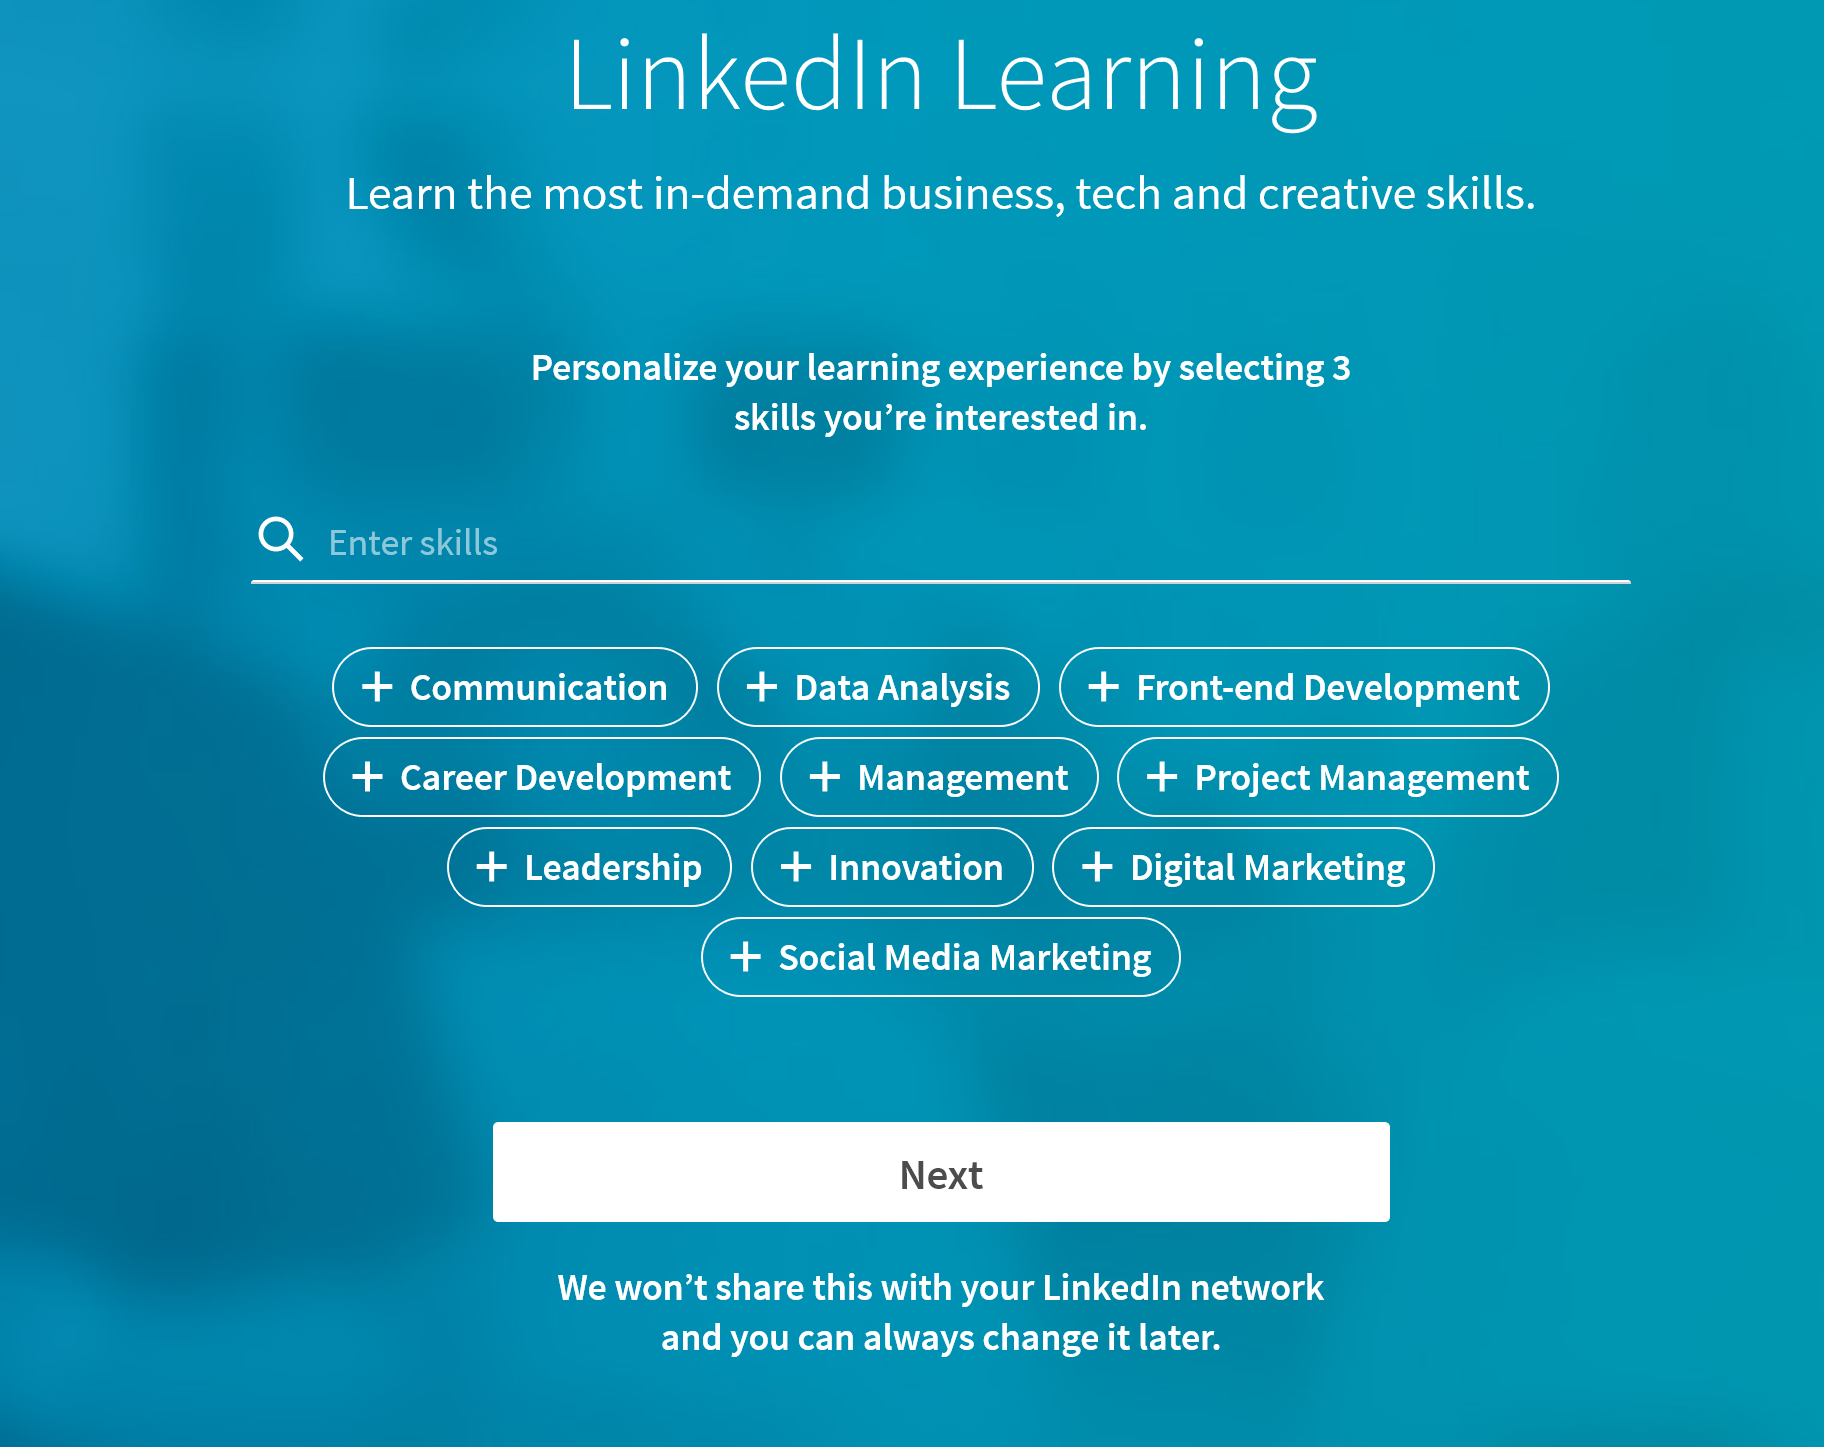 files/images/linkedinlearning.PNG